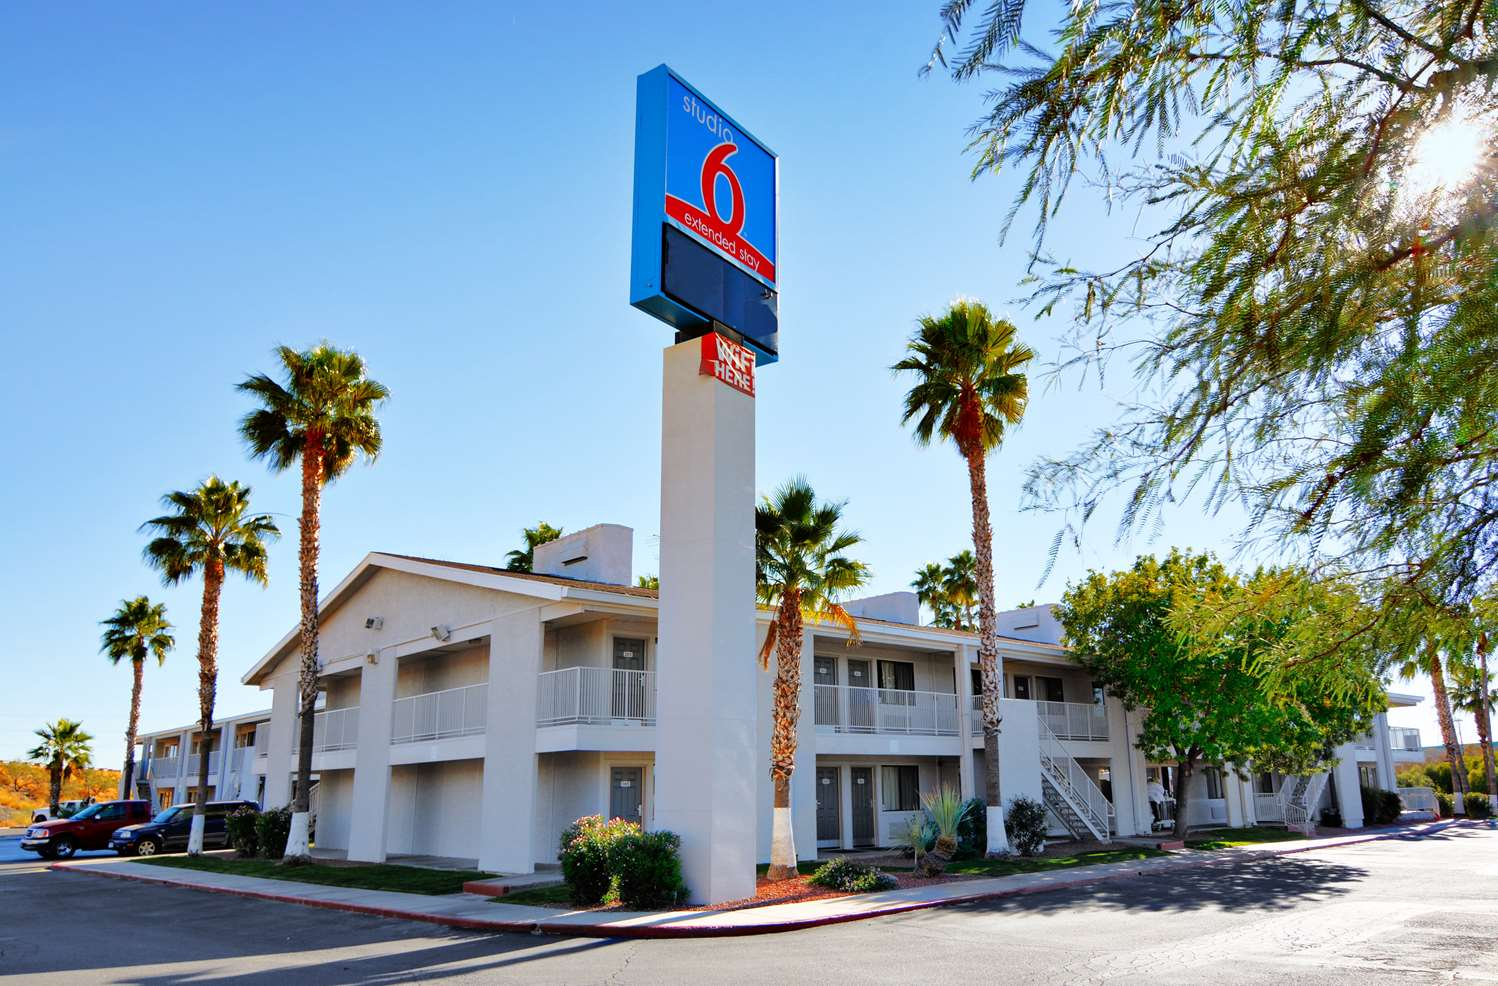 Exterior view - Studio 6 Extended Stay Hotel Irvington Road Tucson